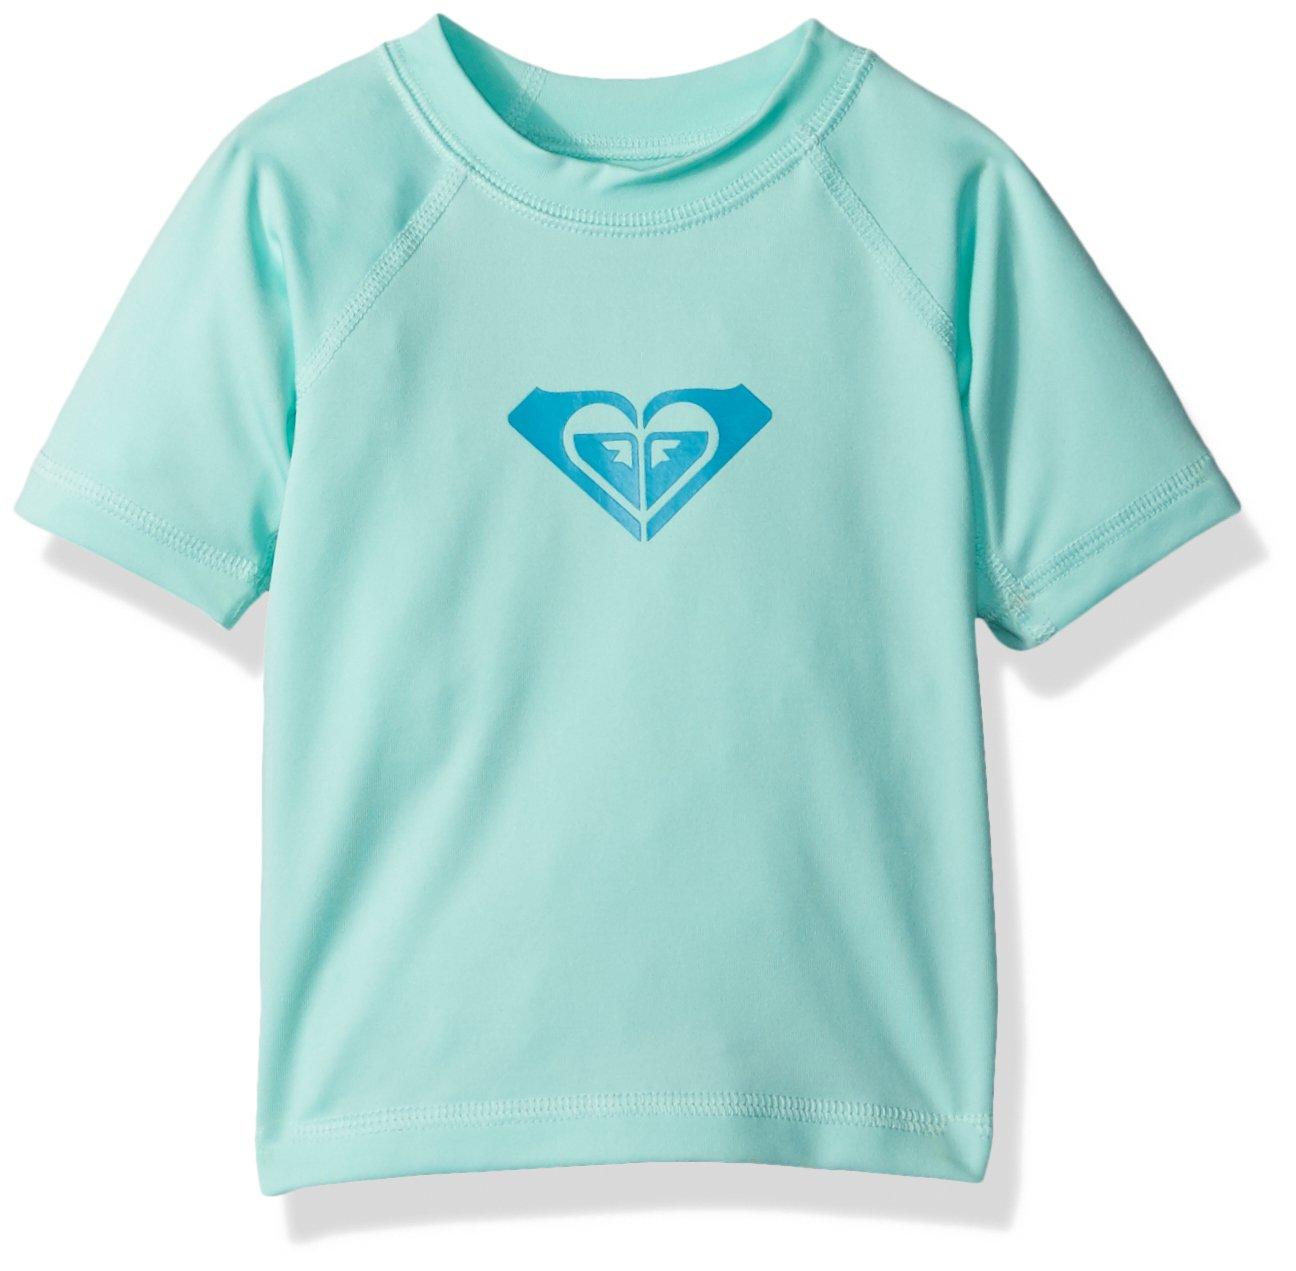 Roxy Baby Girls' Whole Hearted Short Sleeve Infant Rashguard, Beach Glass, 6M by Roxy